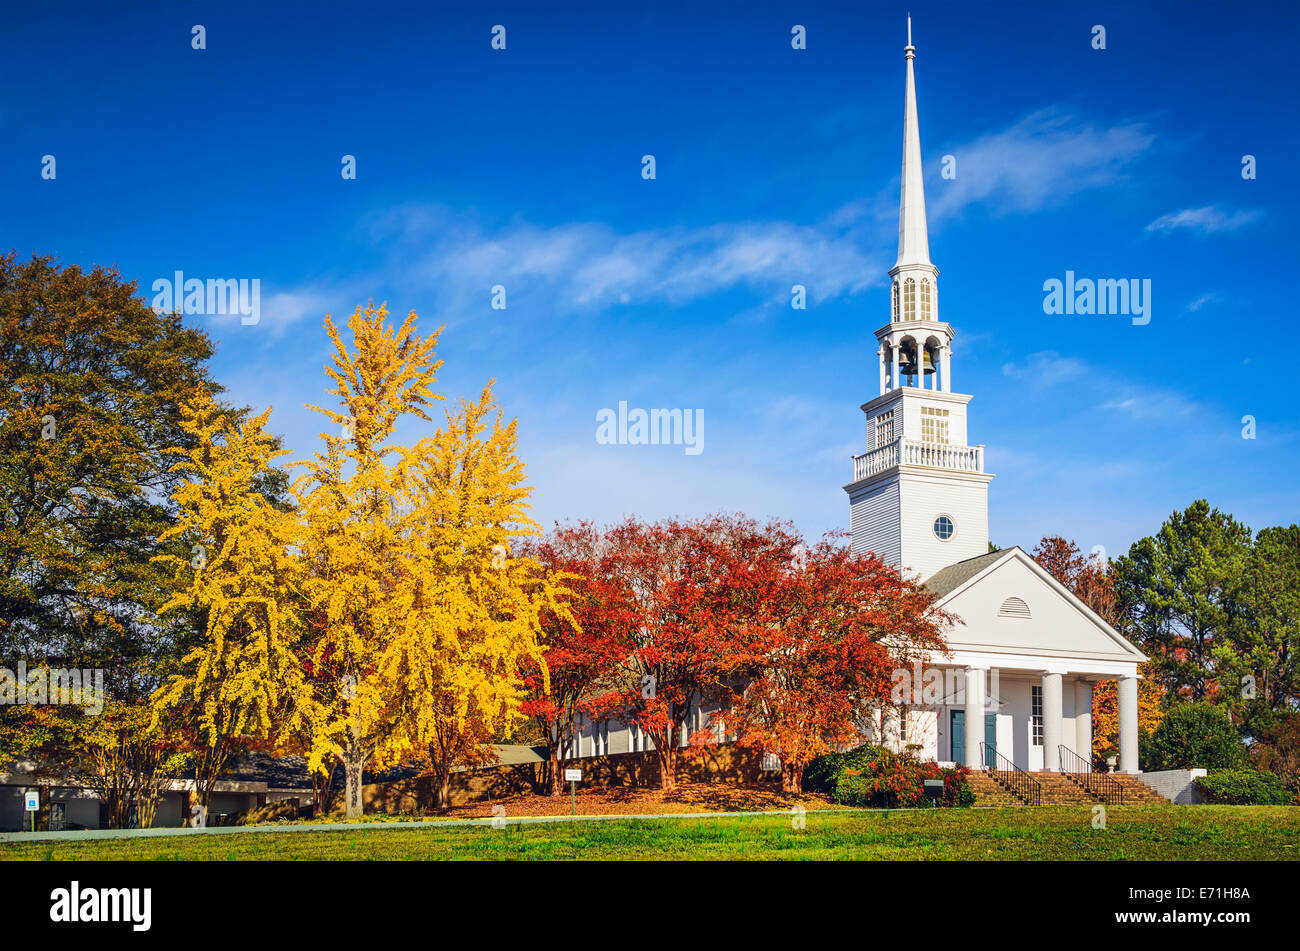 L'église traditionnelle du sud à l'automne. Photo Stock